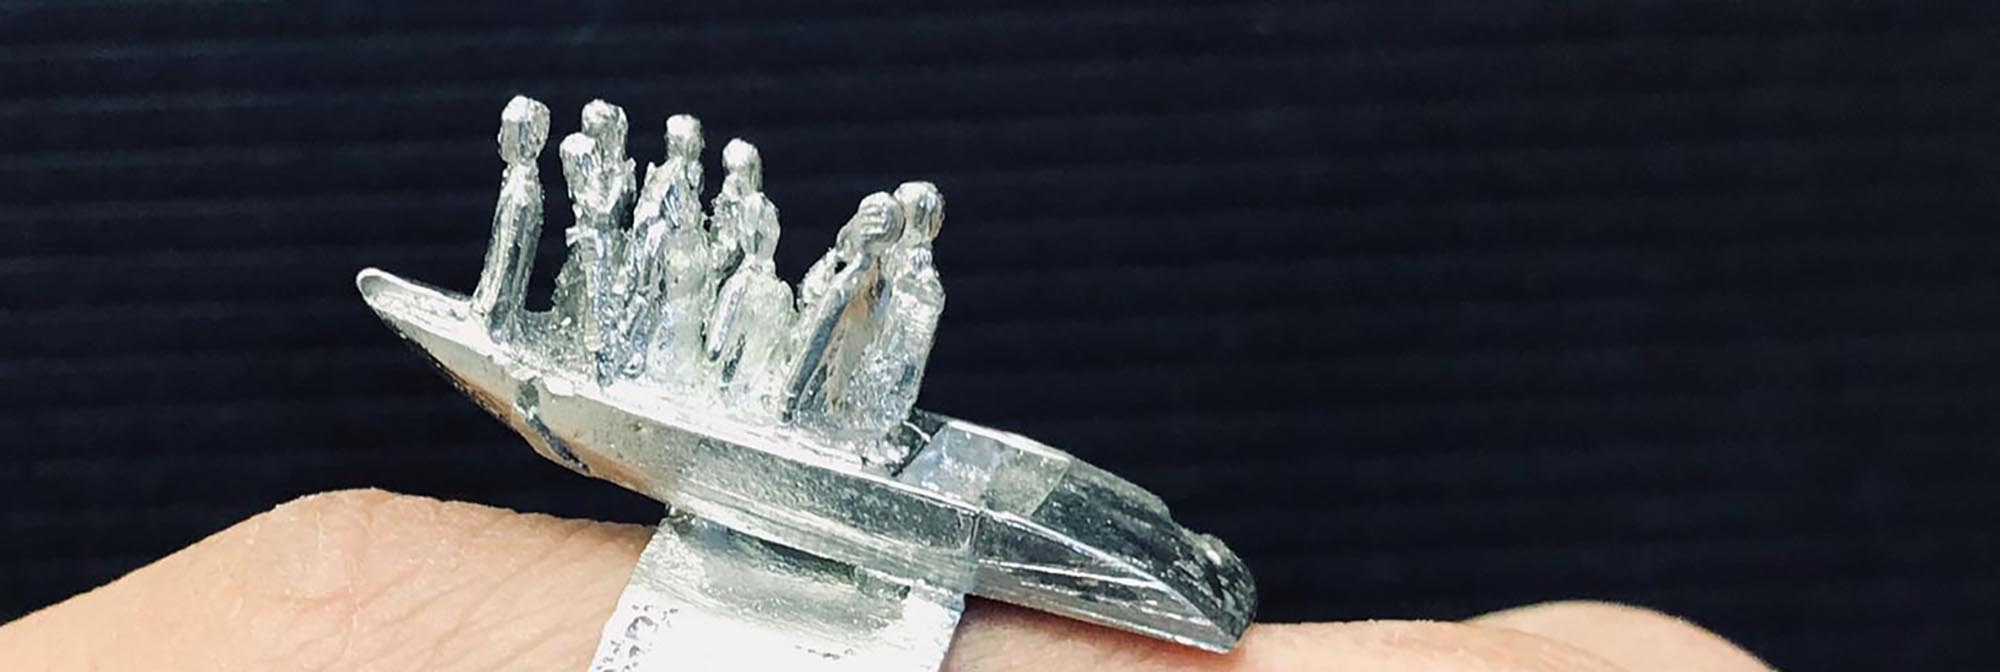 Close up of a pewter ring in the form of people standing in a boat.